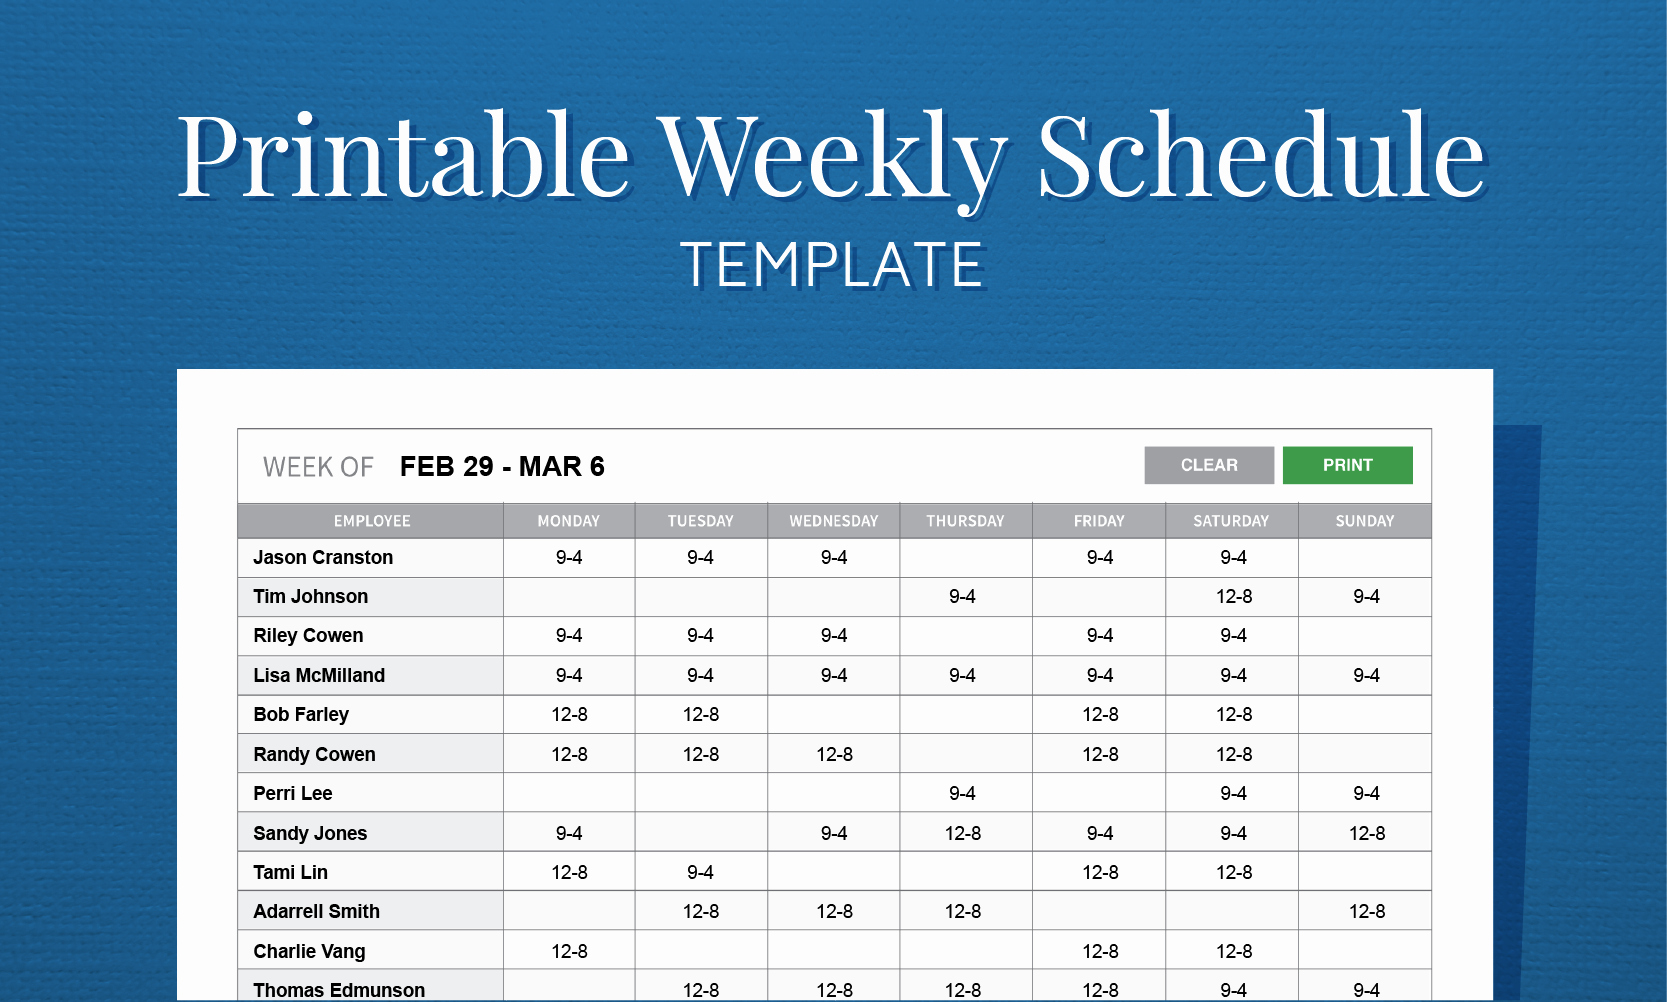 Employee Daily Work Schedule Template Beautiful Free Printable Weekly Work Schedule Template for Employee